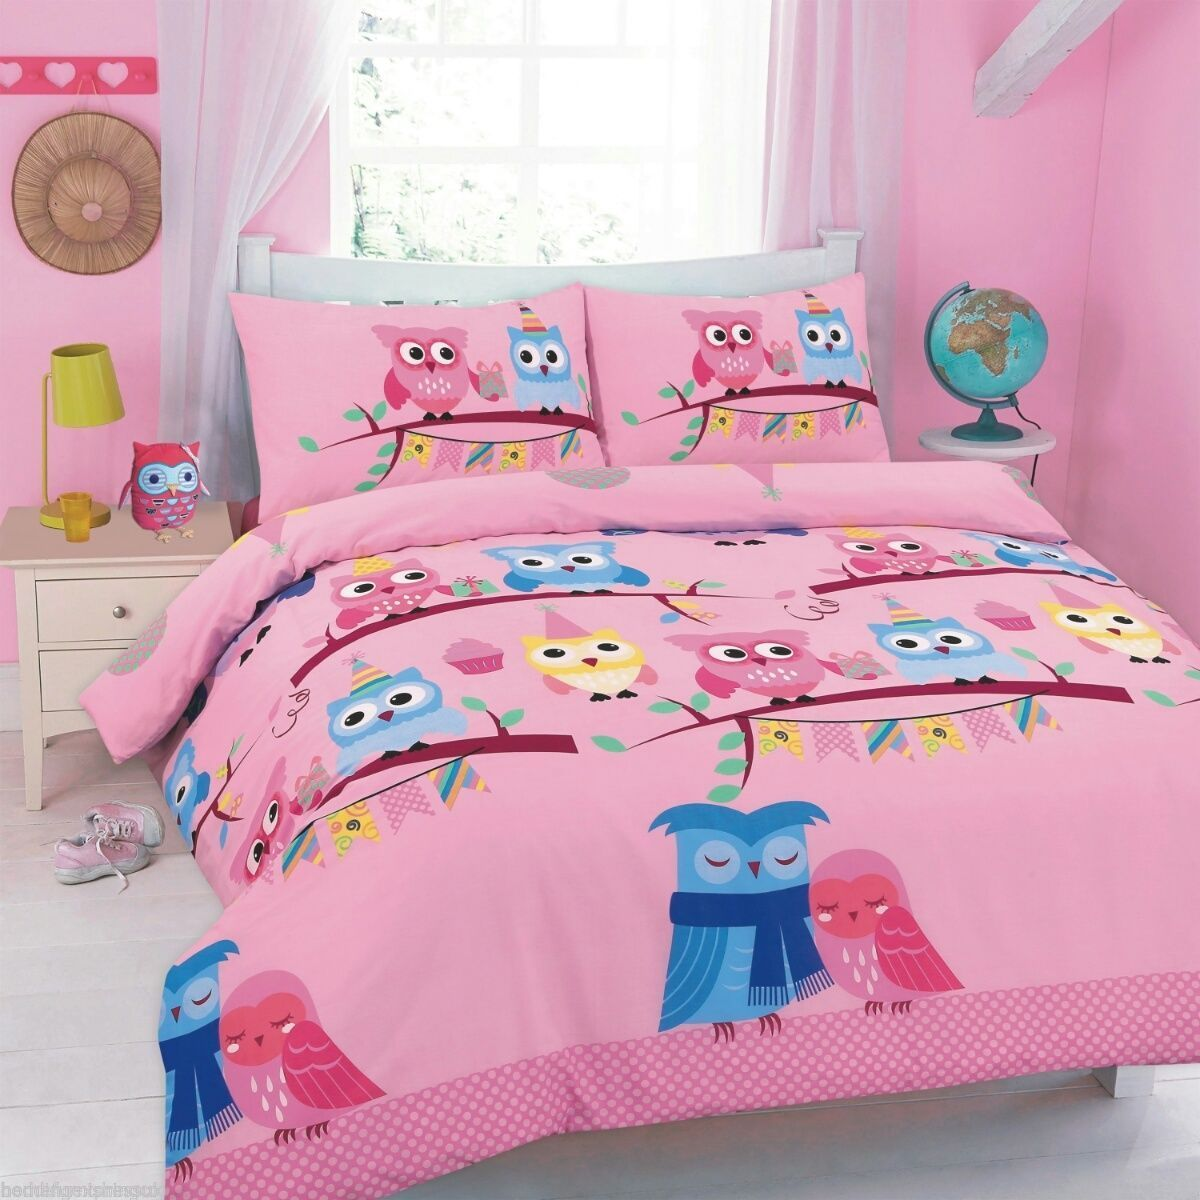 cute owls floral printed duvet cover bedding set single pink  ebay - picture  of